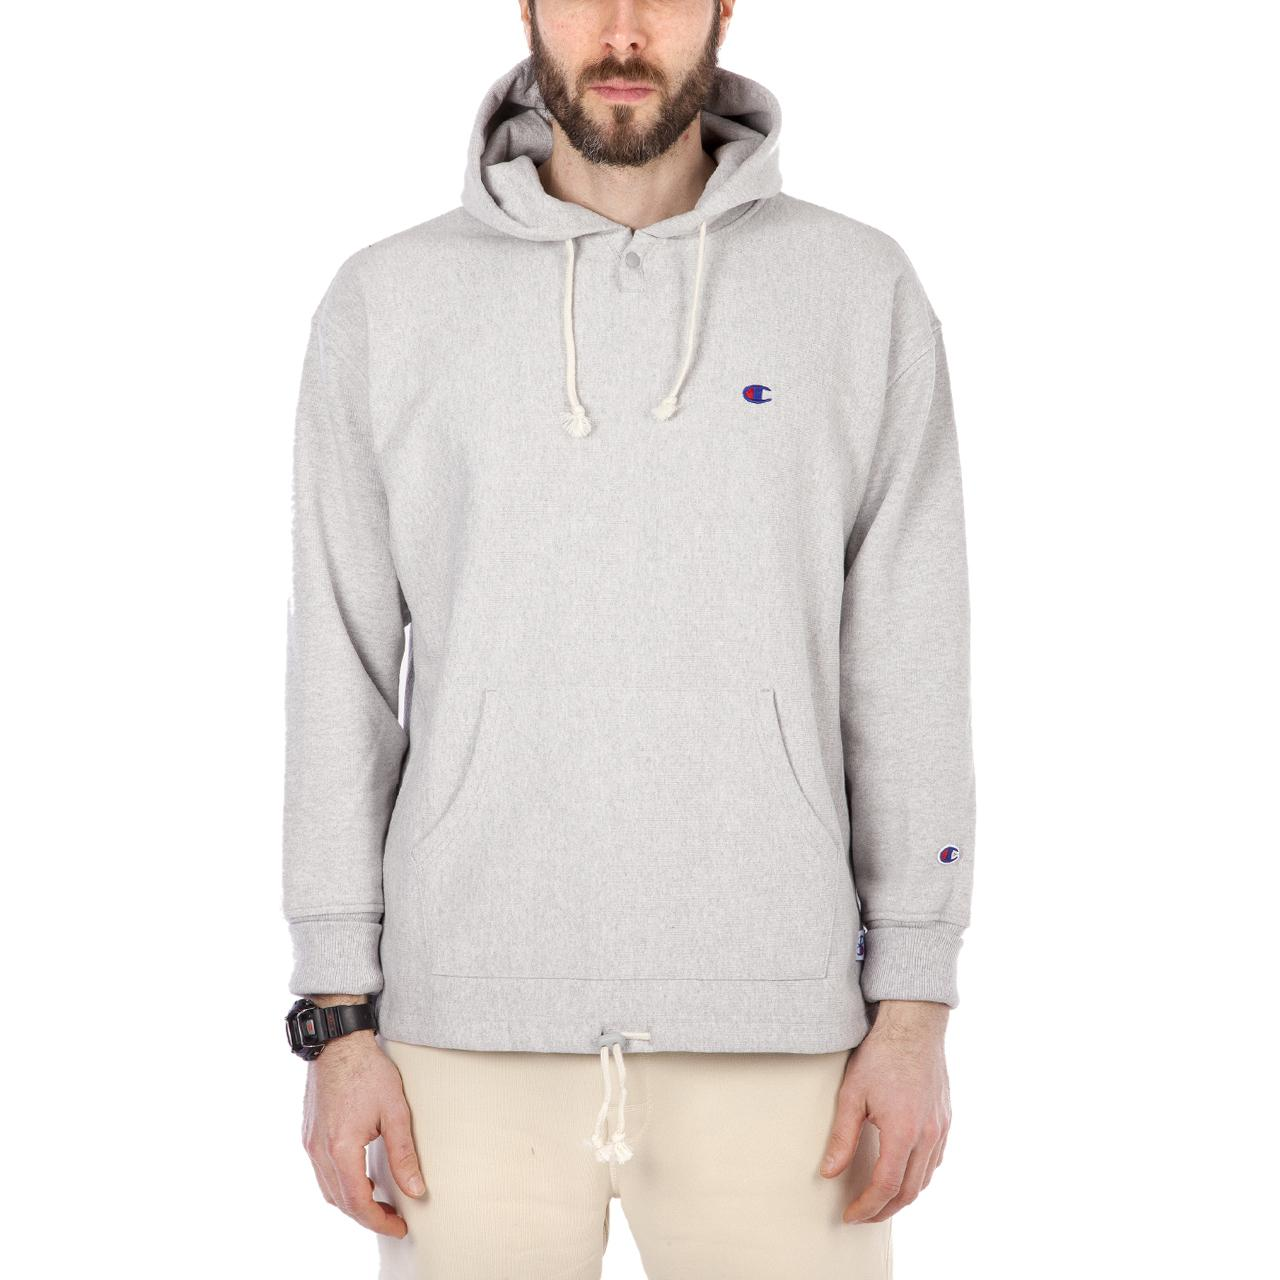 b050d7ce0be3 Champion X Beams Reverse Weave Terry Hooded Sweat in Gray for Men - Lyst